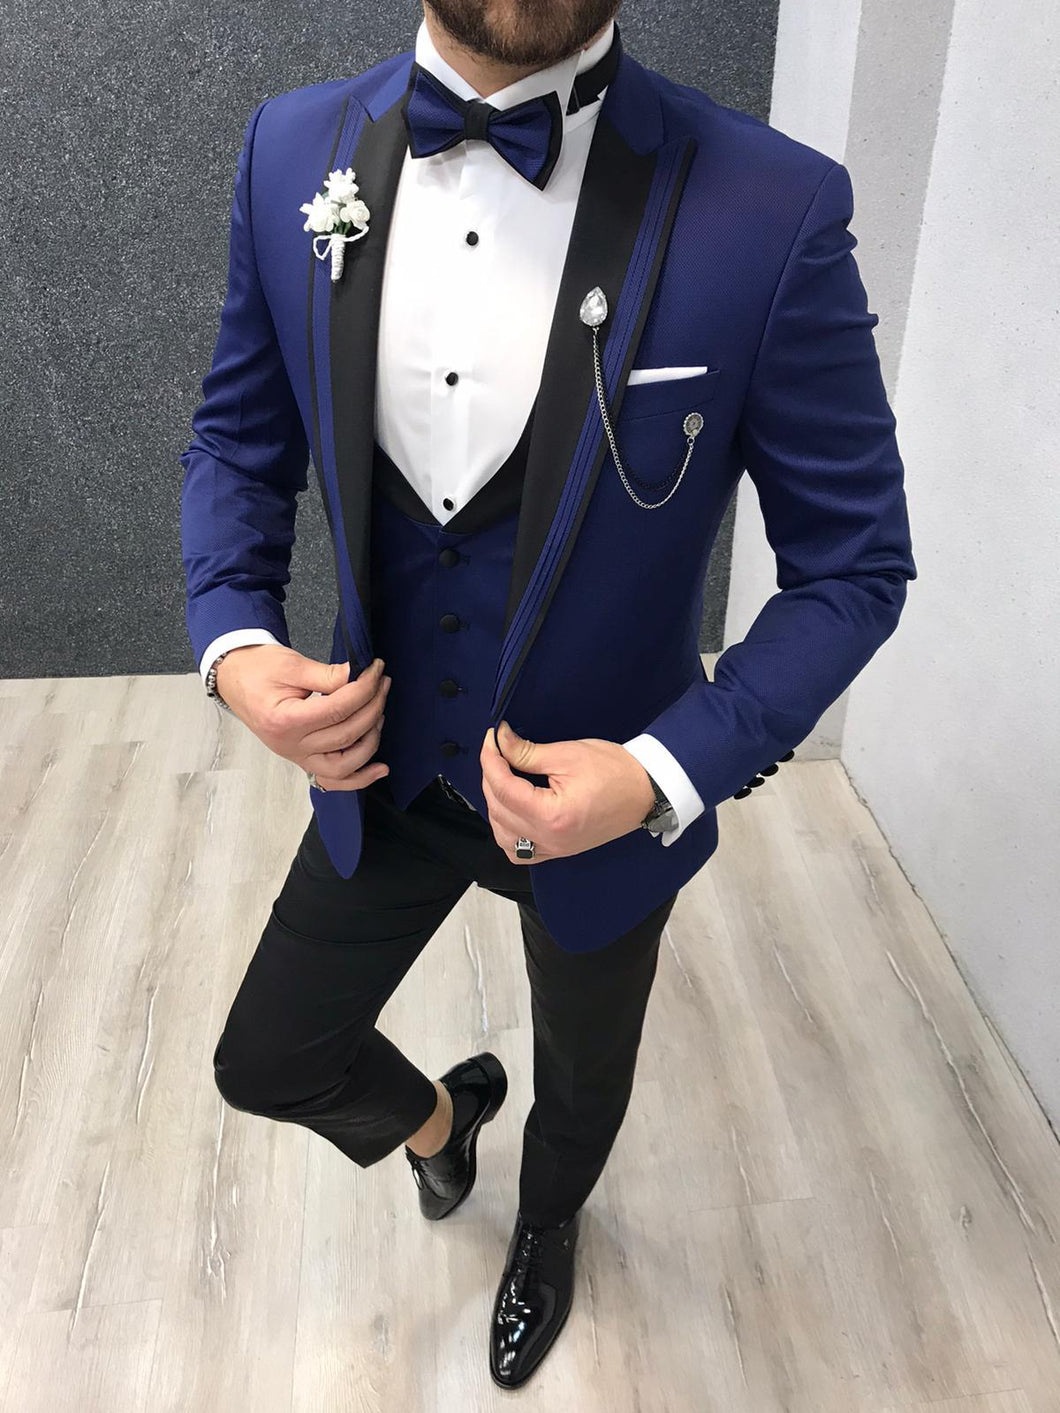 Noah Sax Vested Tuxedo (Wedding Edition)